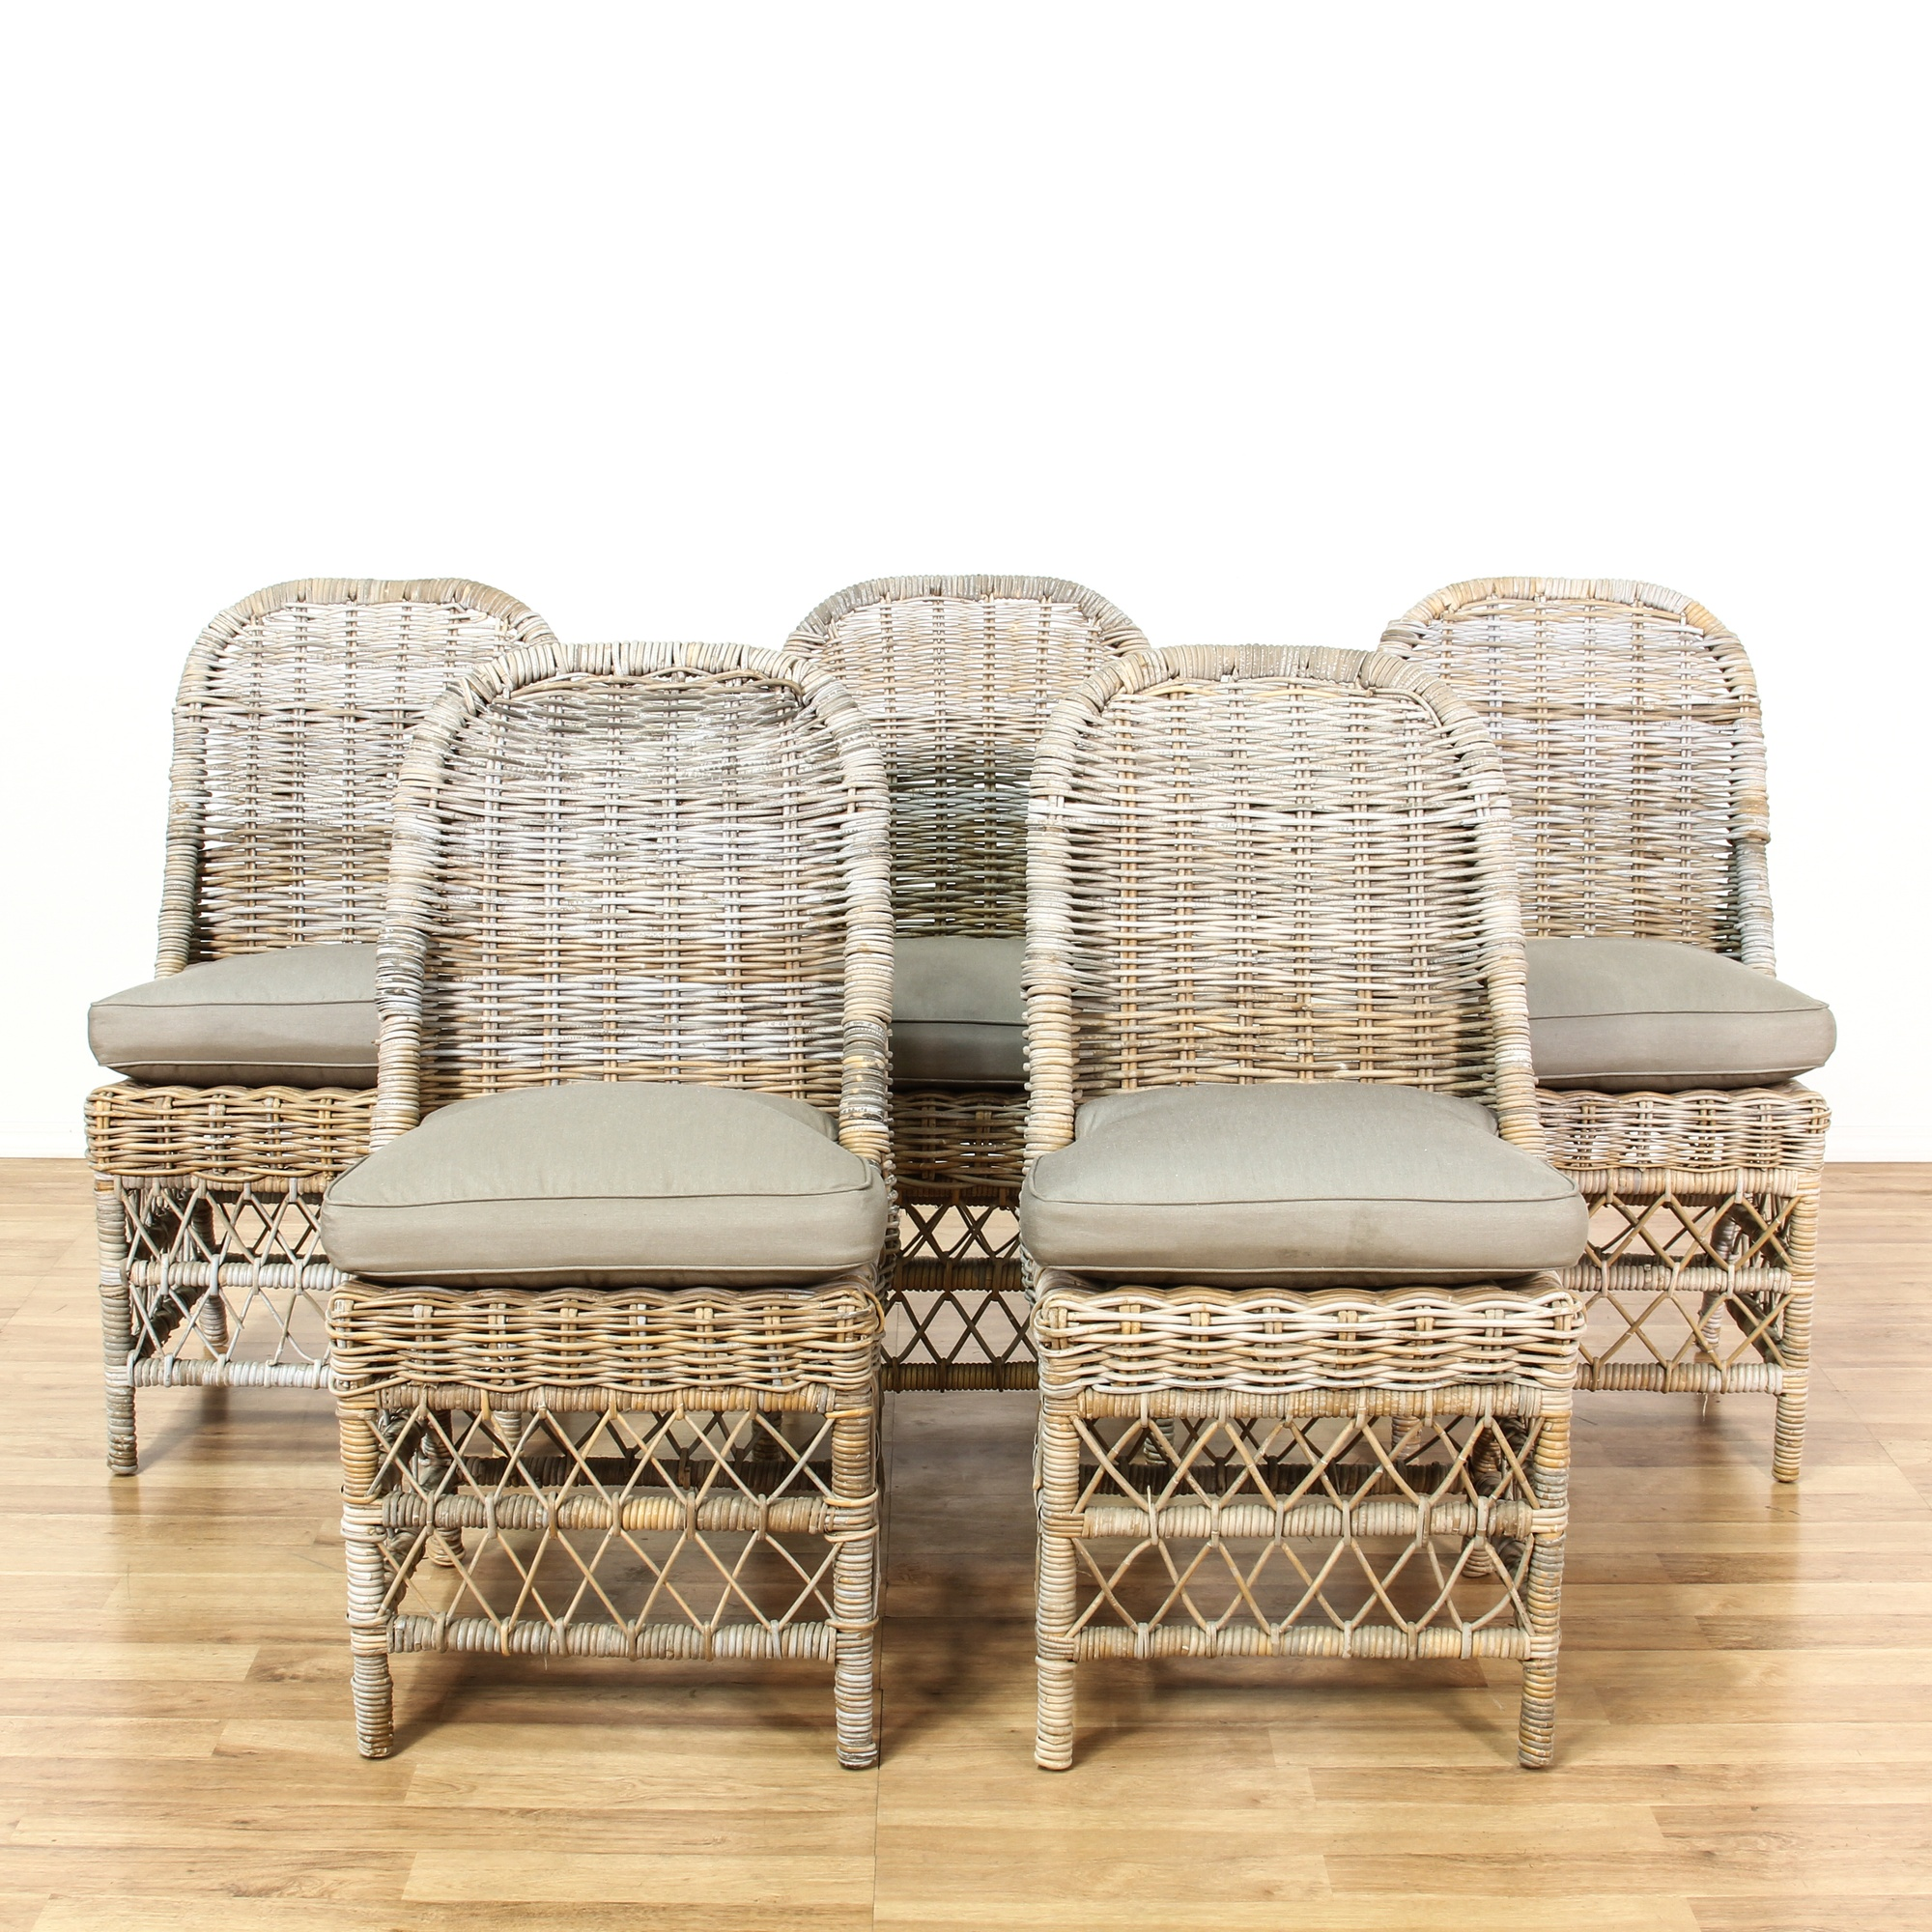 Set Of 5 Driftwood Wicker Outdoor Patio Chairs Loveseat